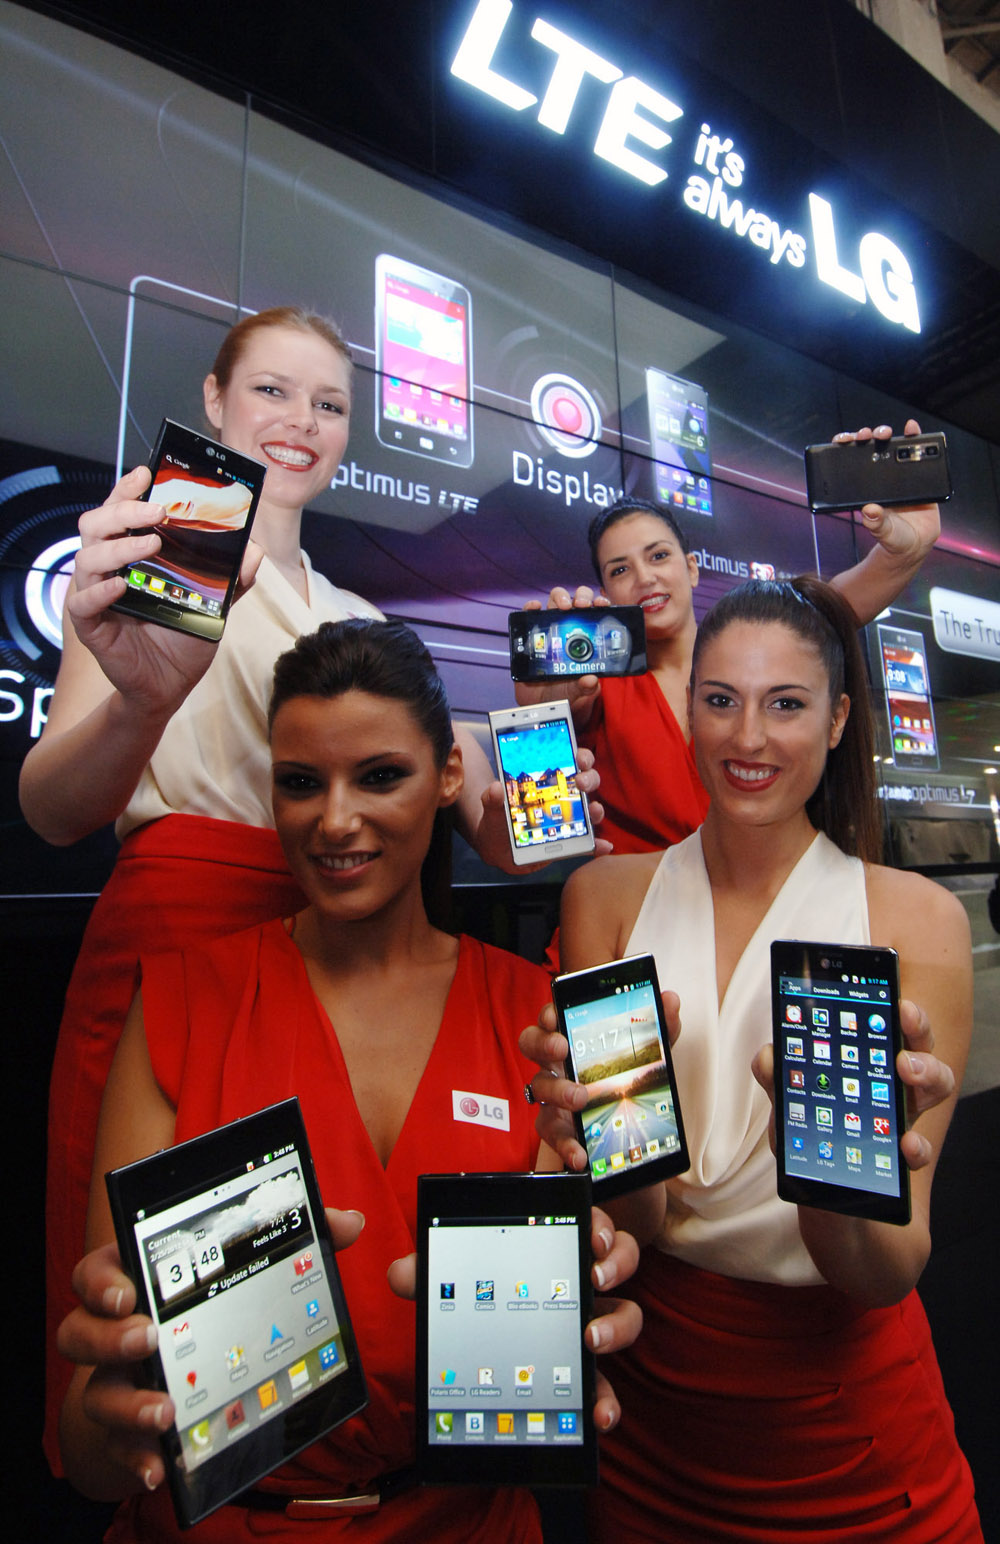 Another image of four female models holding eight LG LTE smartphones at MWC 2012